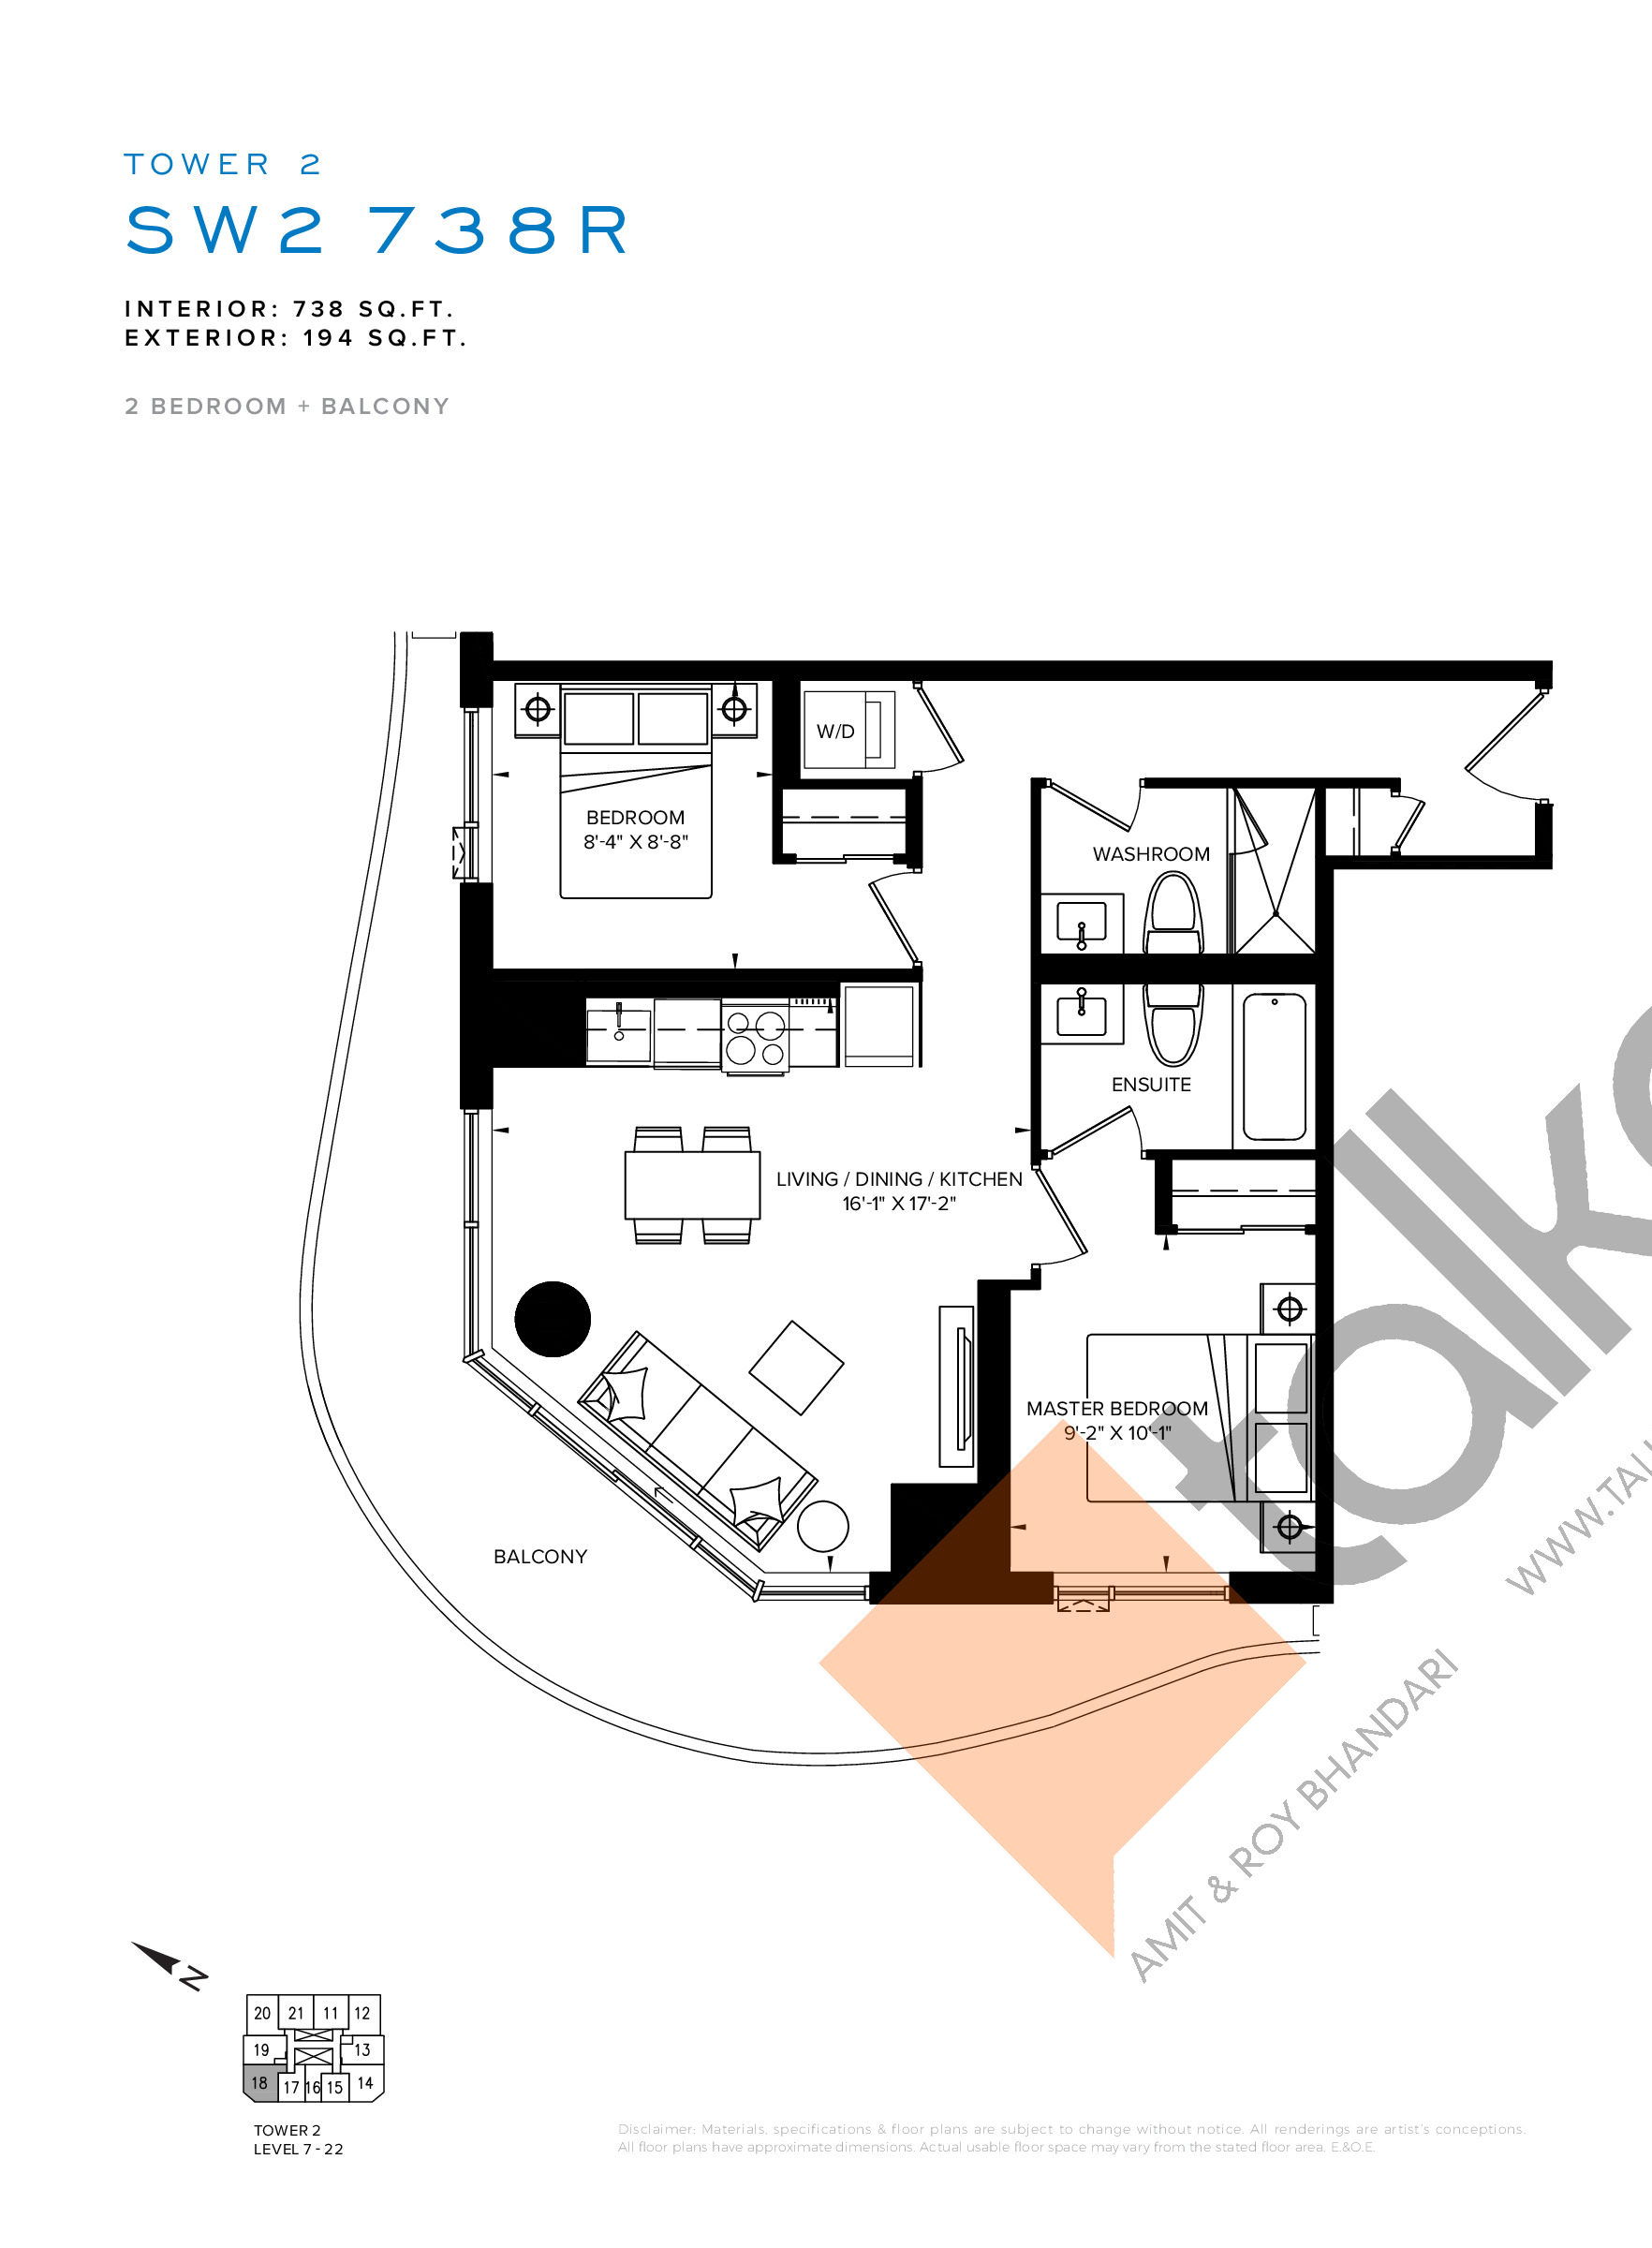 SW2 738R Floor Plan at SXSW Tower 2 Condos (SXSW2) - 738 sq.ft